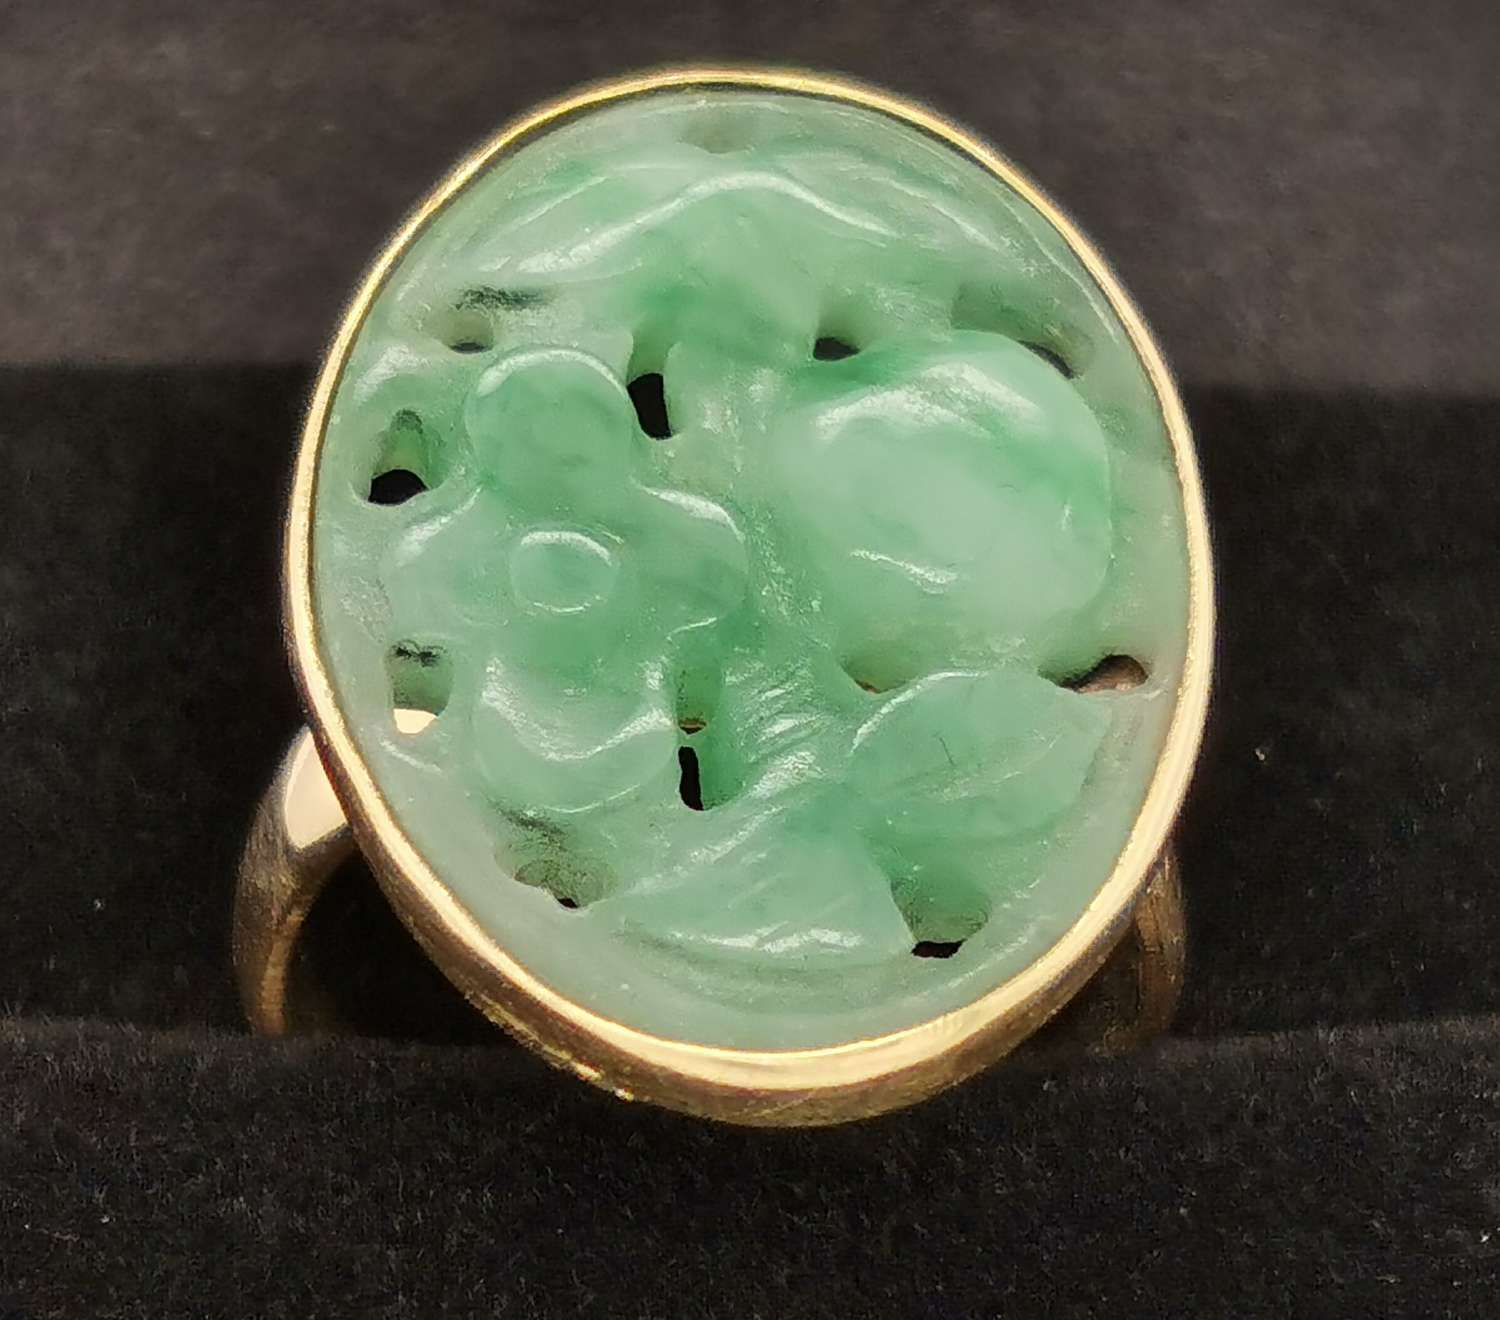 Vintage 18ct Gold and Jade Ring - UK size P 1/2